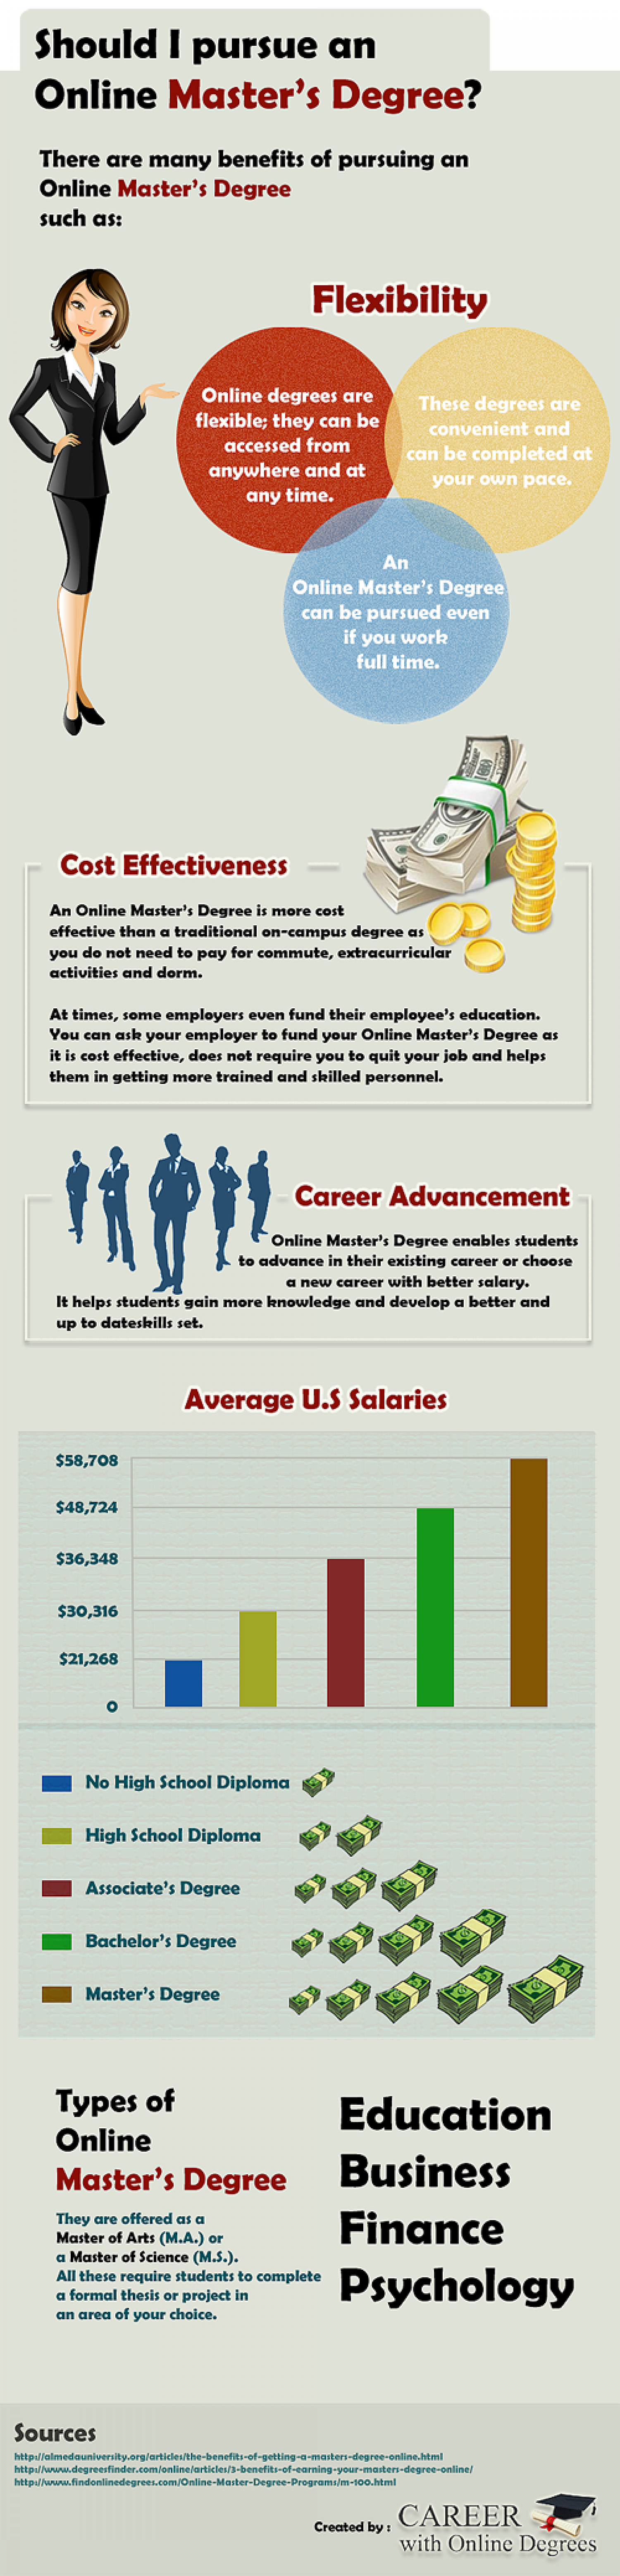 Infographic - Should I Pursue an Online Master's Degree Infographic